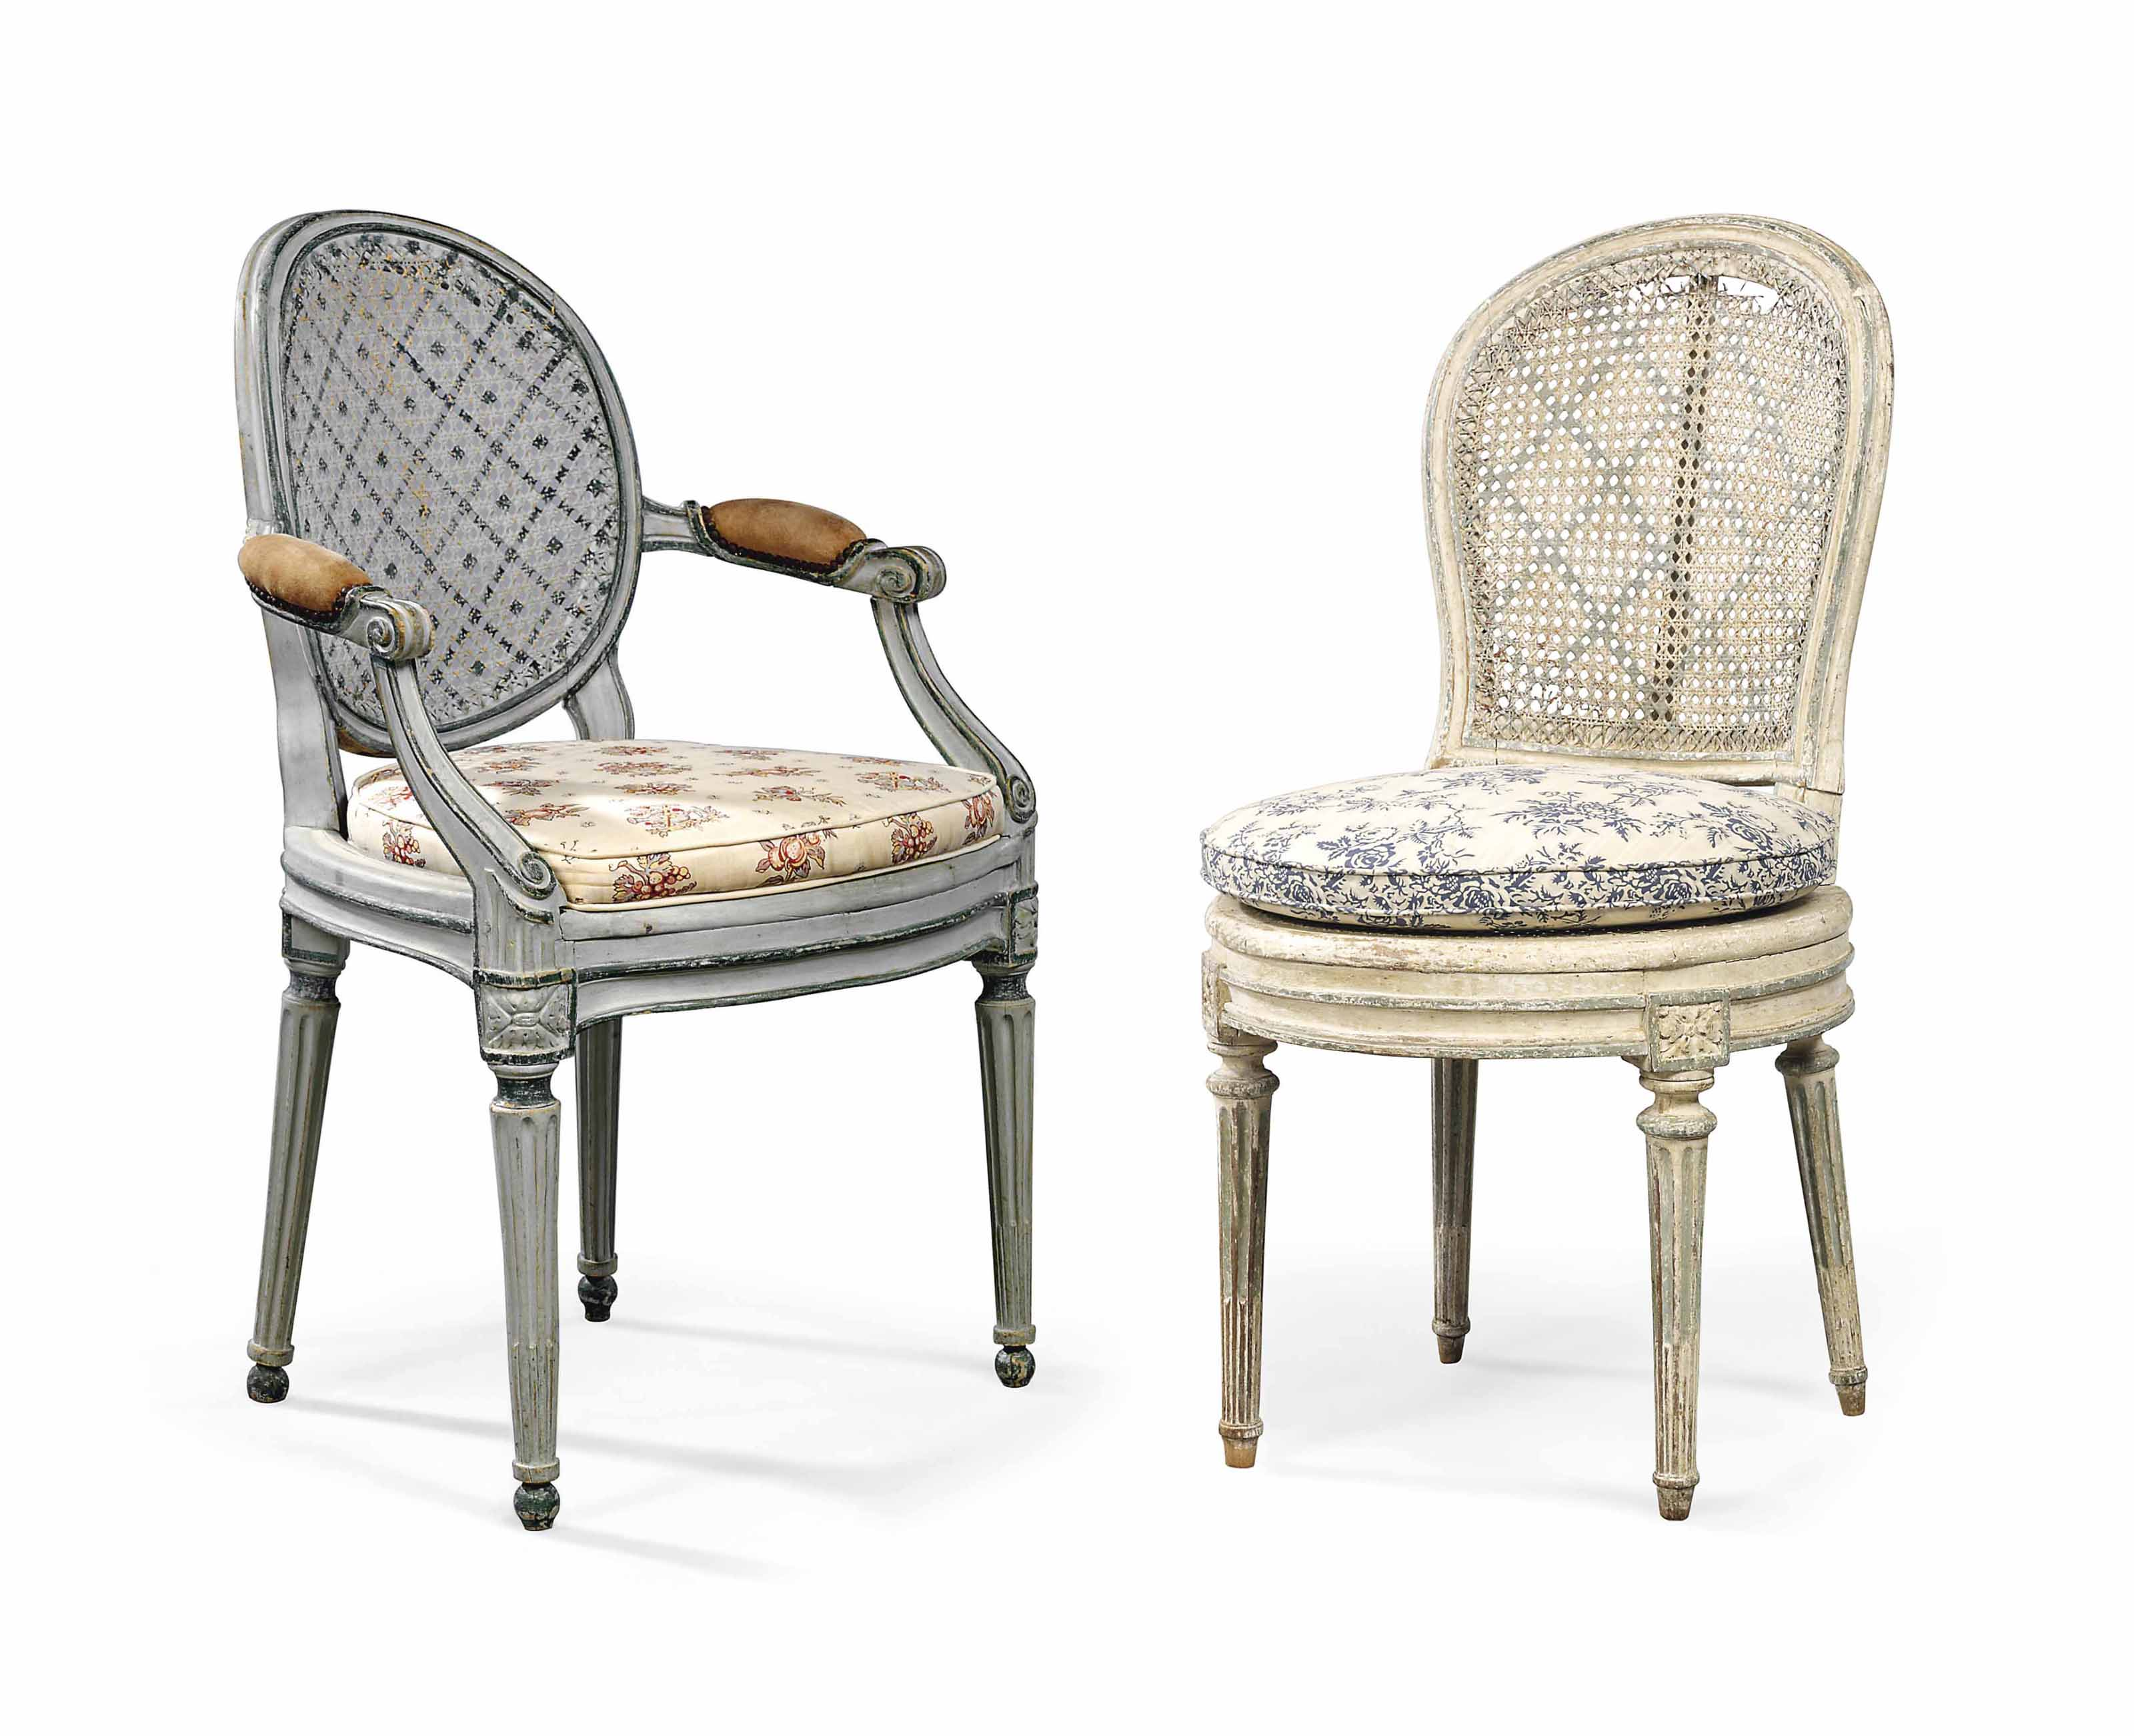 A LATE LOUIS XV GREEN-PAINTED FAUTEUIL